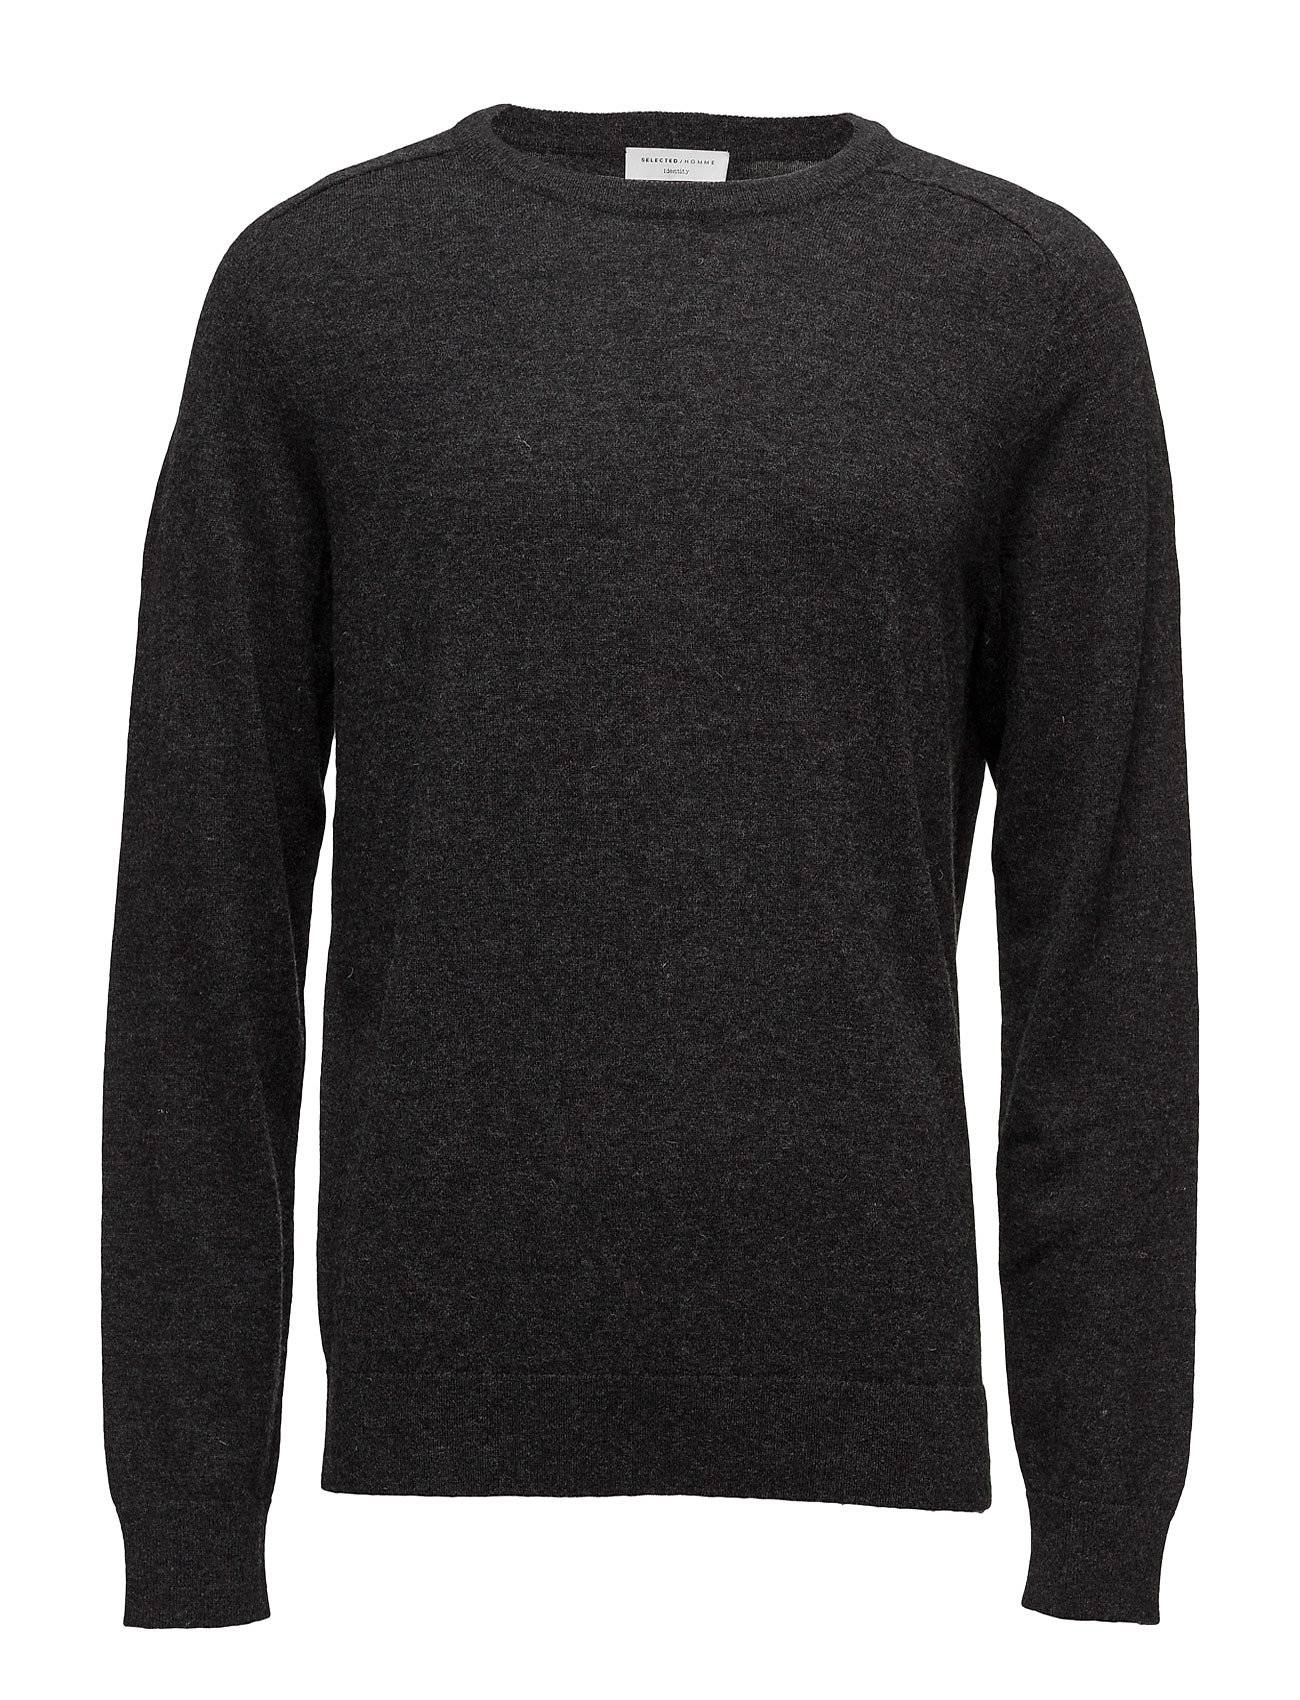 Selected Homme Shdblade Silk Crew Neck